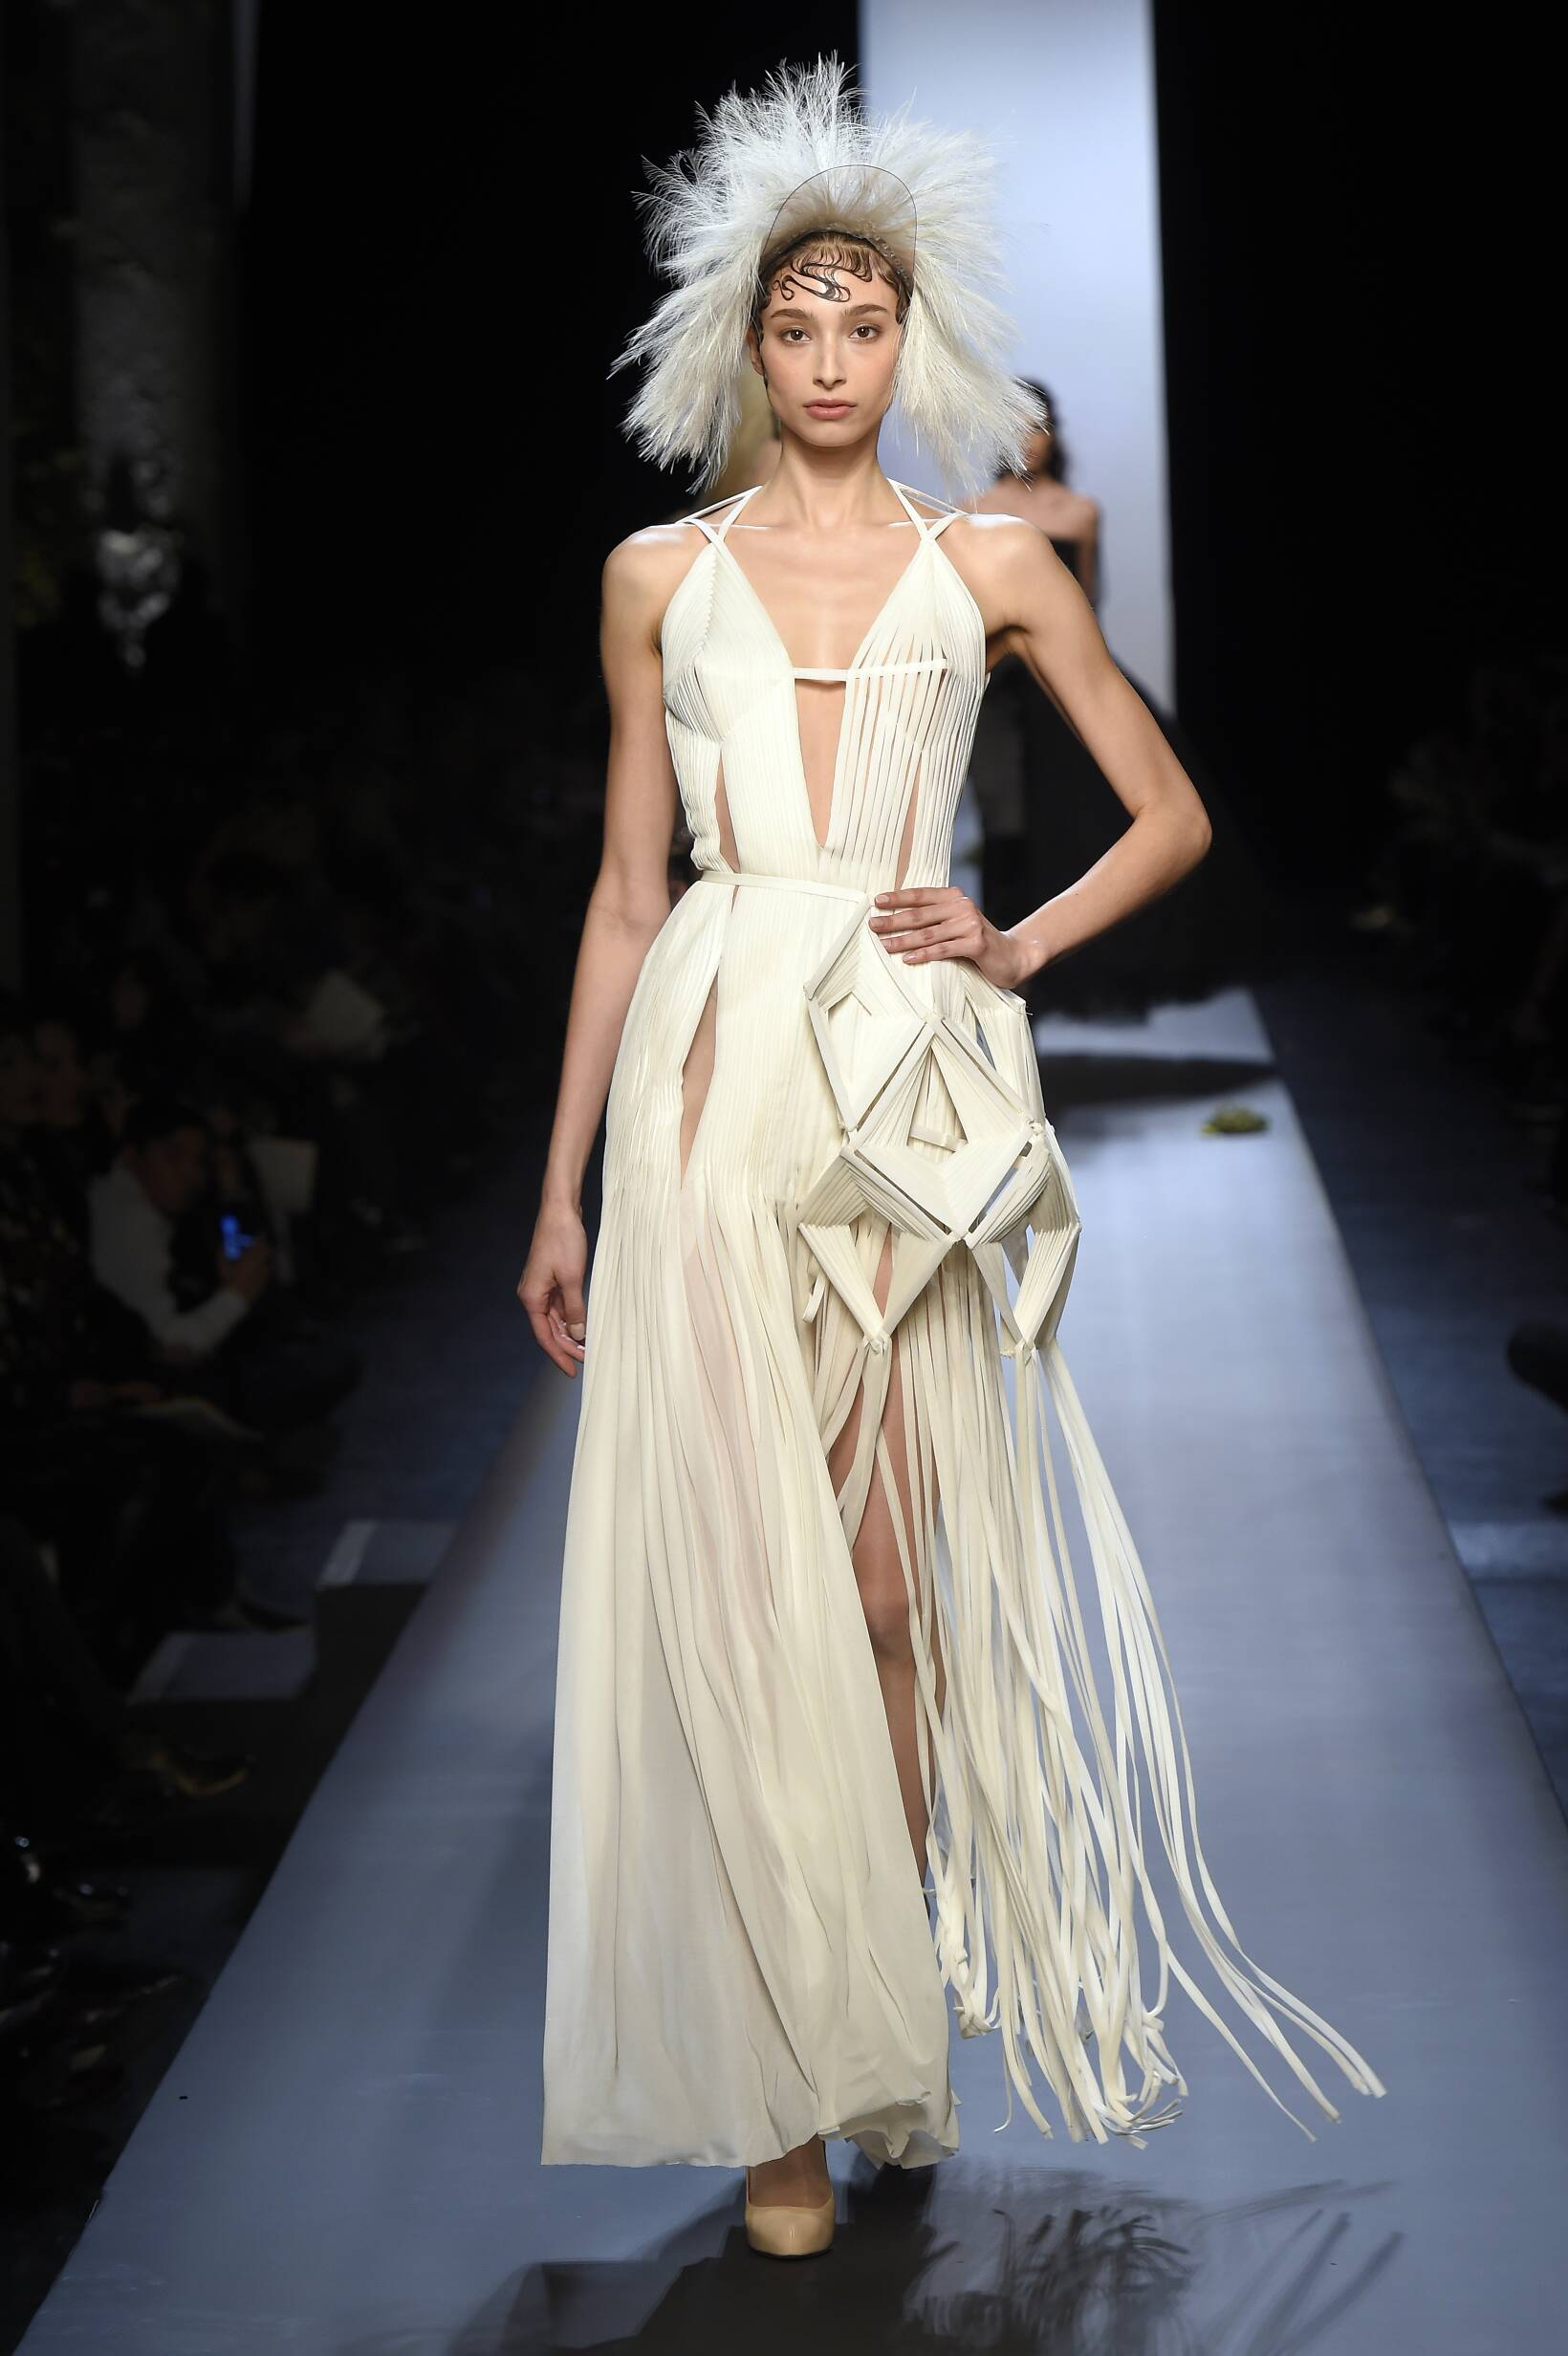 2015 Catwalk Jean Paul Gaultier Haute Couture Spring Summer Women's Collection Paris Fashion Week